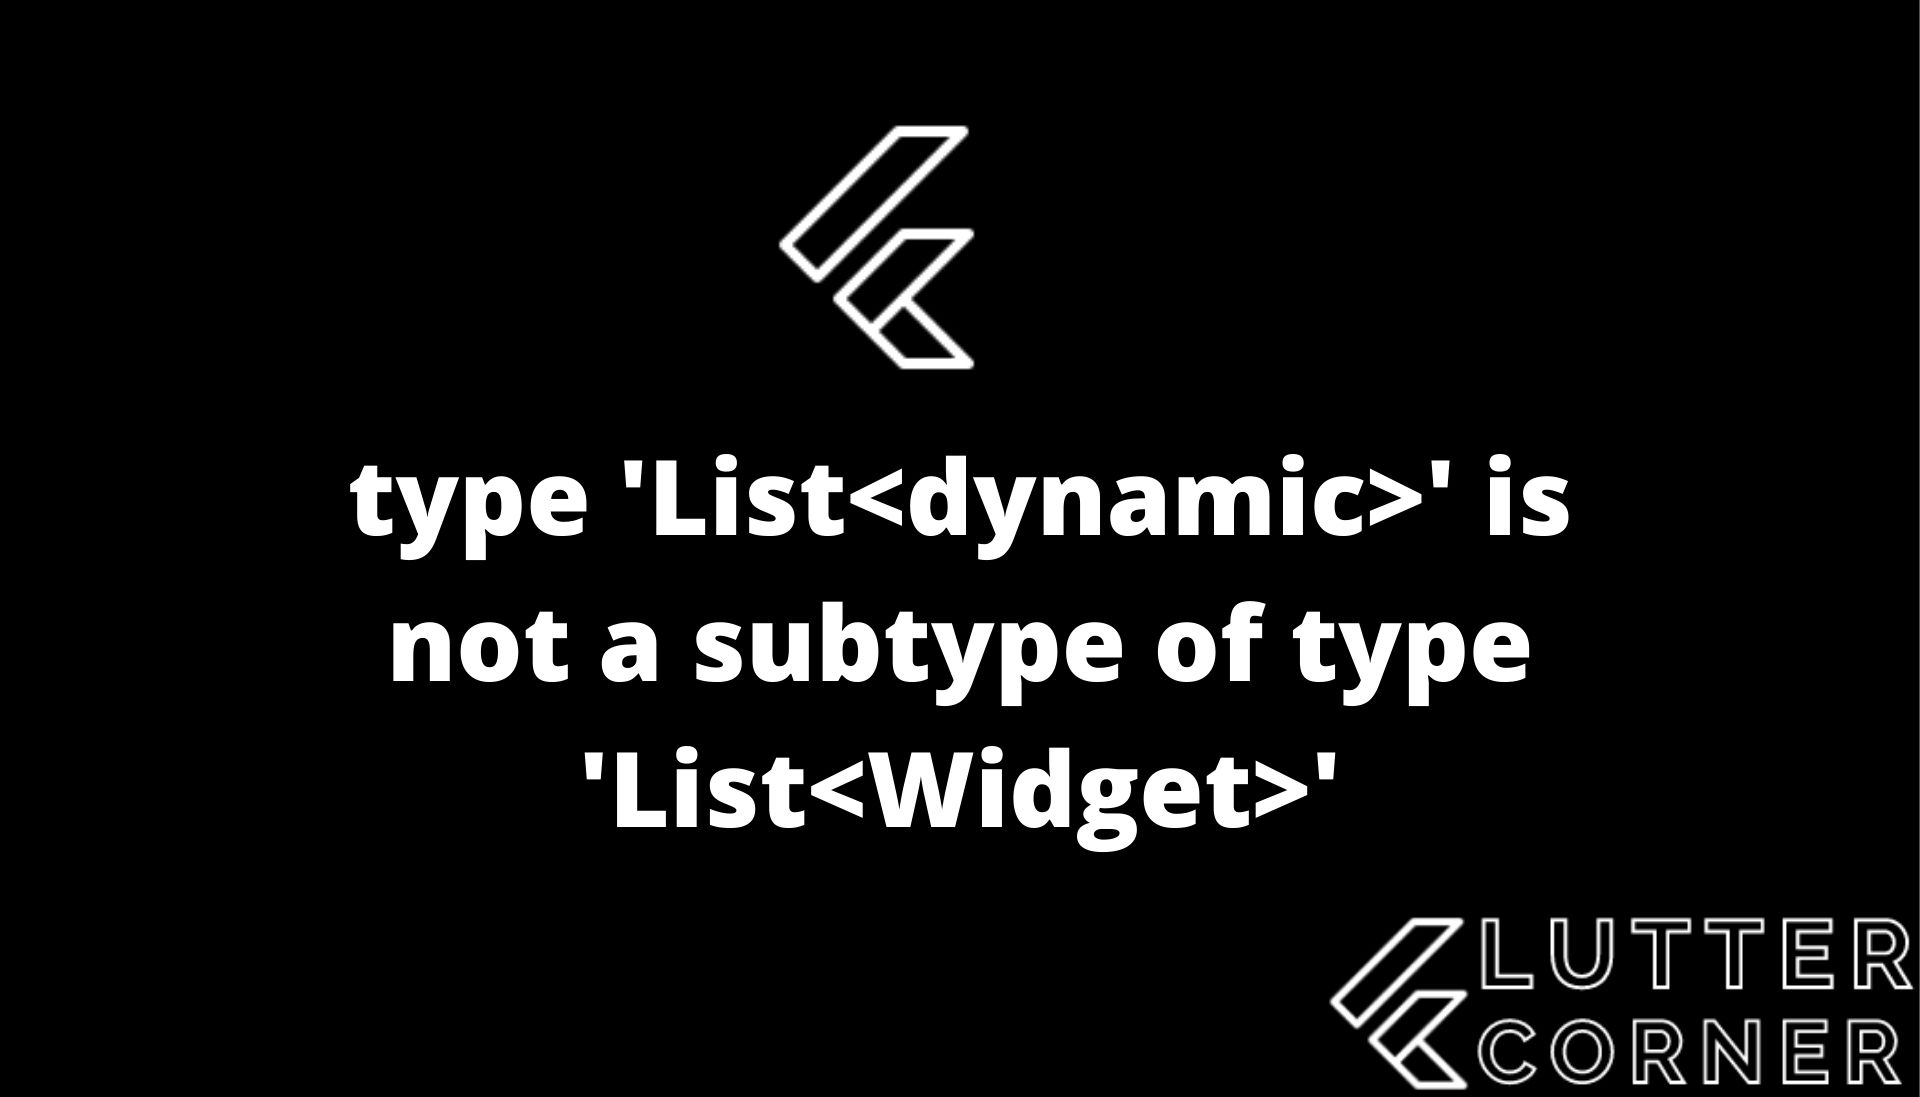 type 'List' is not a subtype of type 'List', type list dynamic is not subtype of list widget, type argument to the method, cast dynamic list to list, inference fails in an unexpected